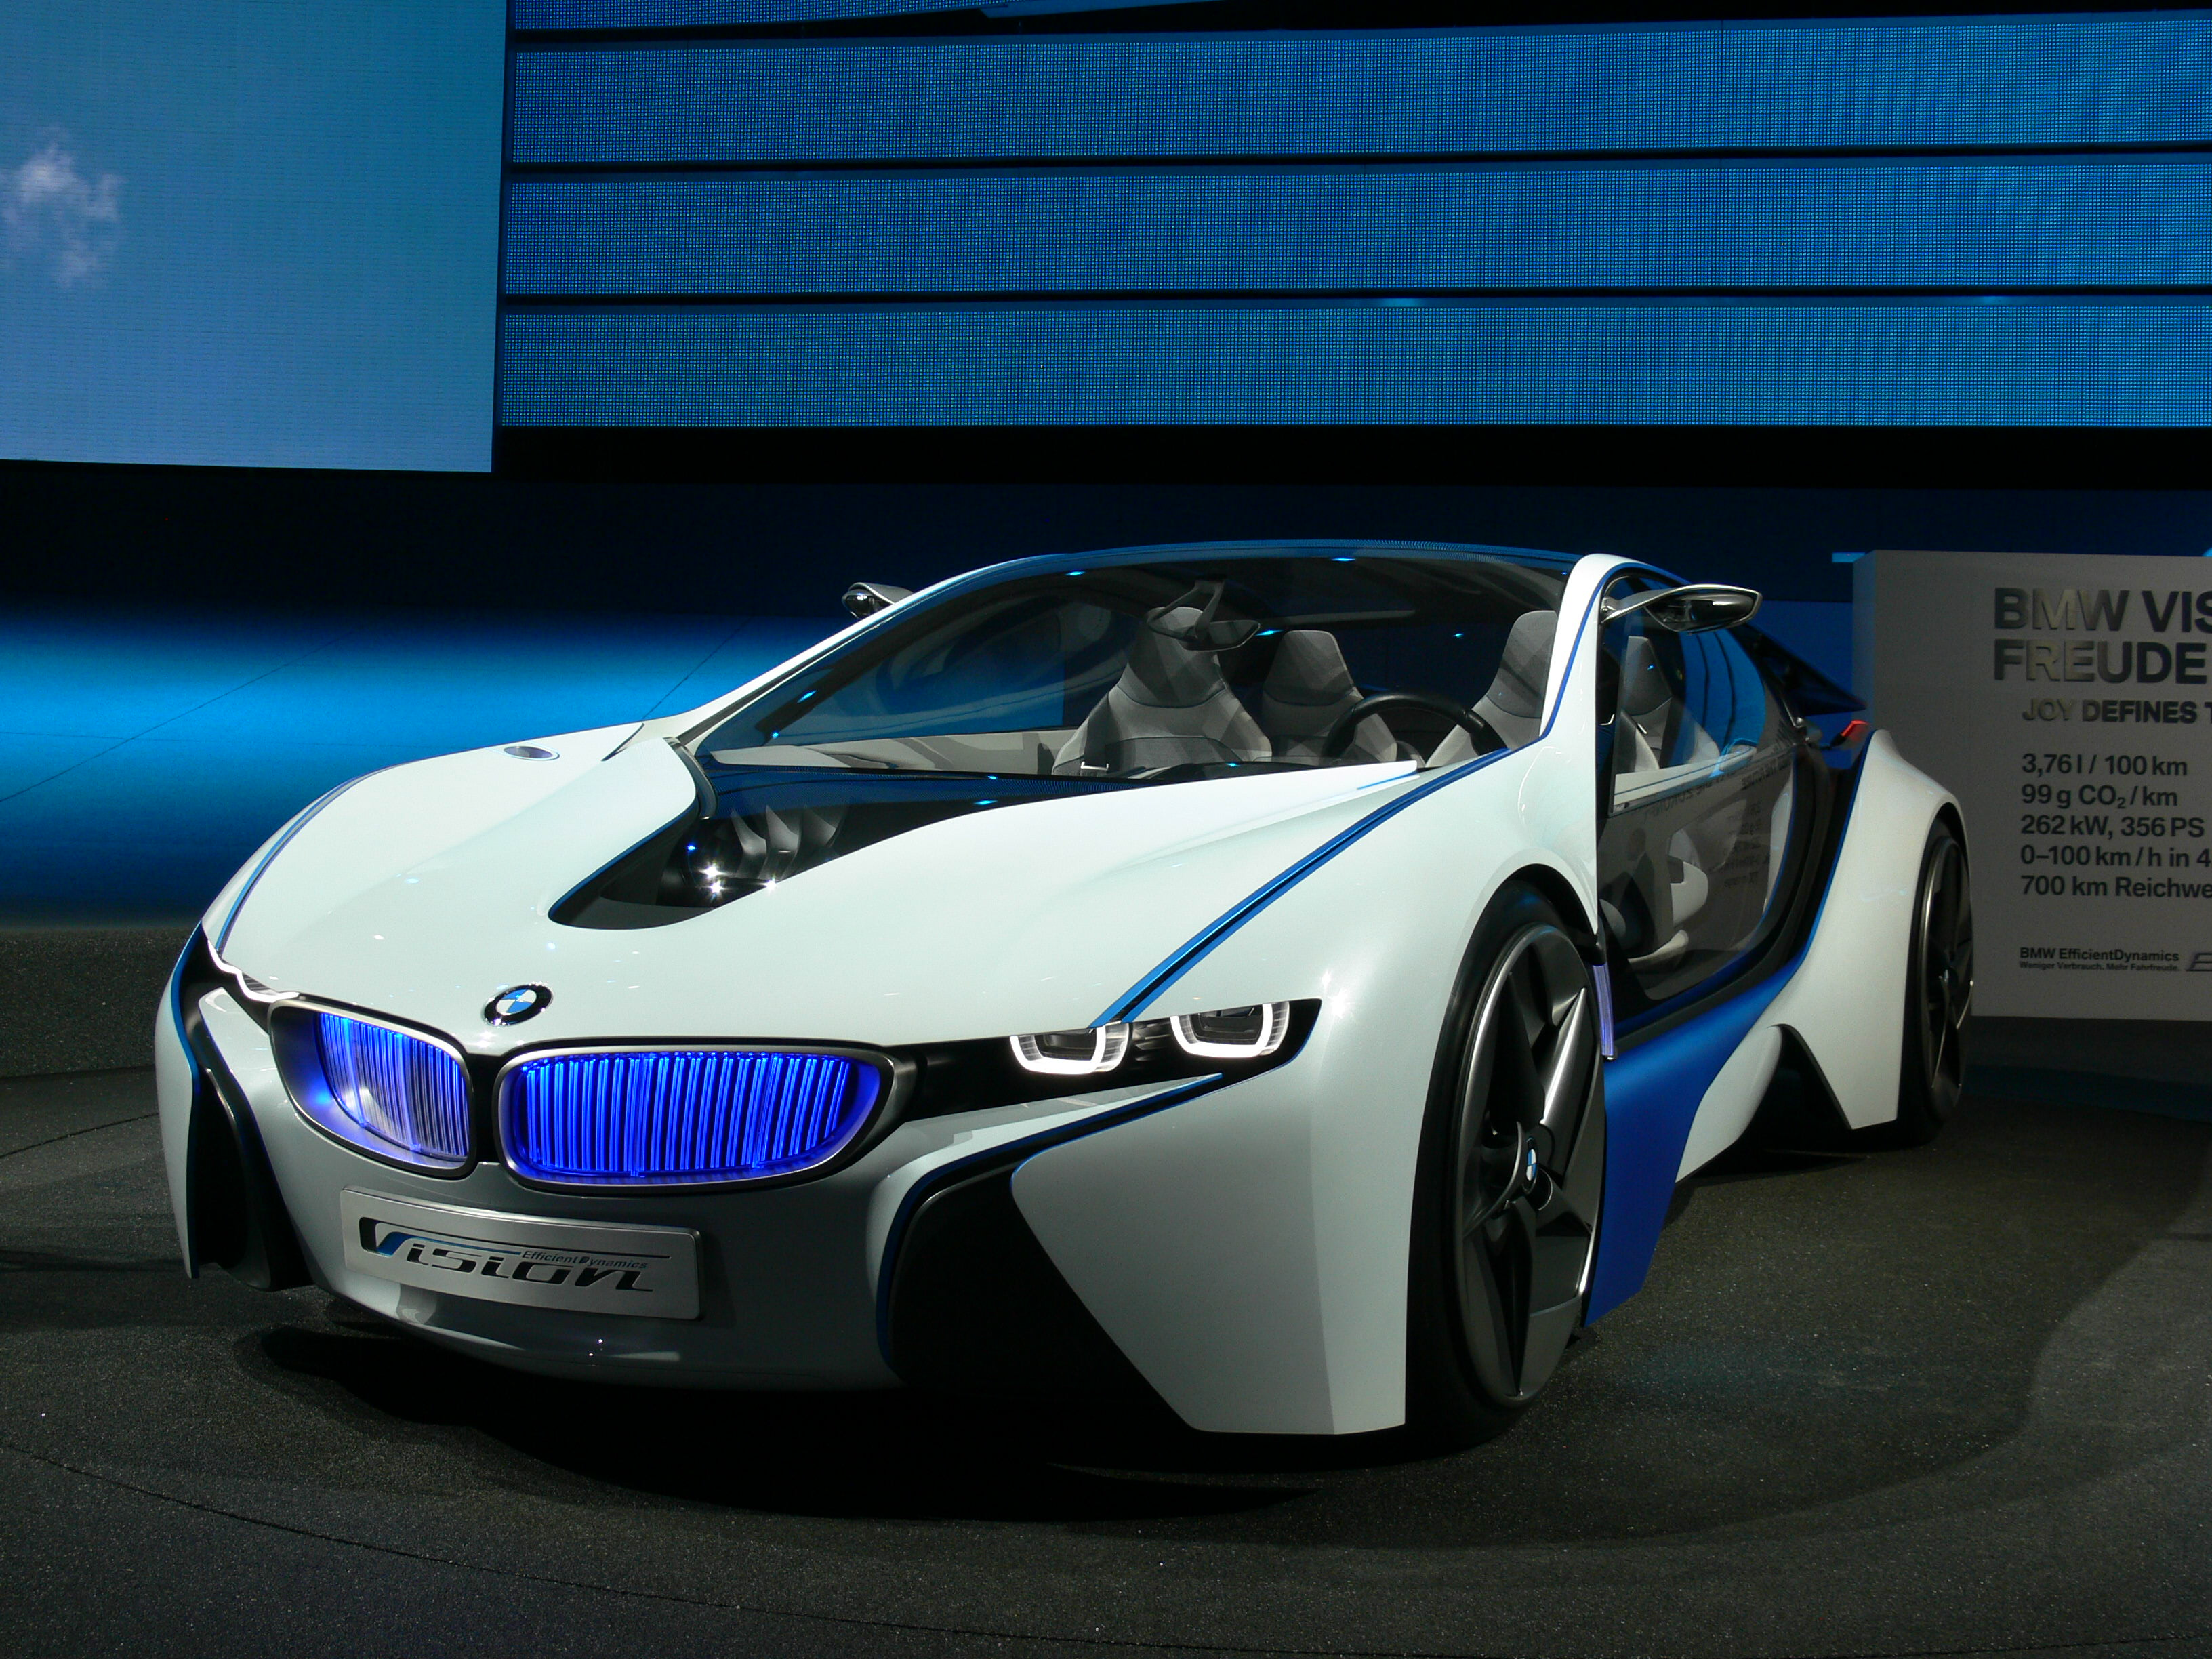 File:BMW Concept Vision Efficient Dynamics Front.JPG - Wikipedia, the ...